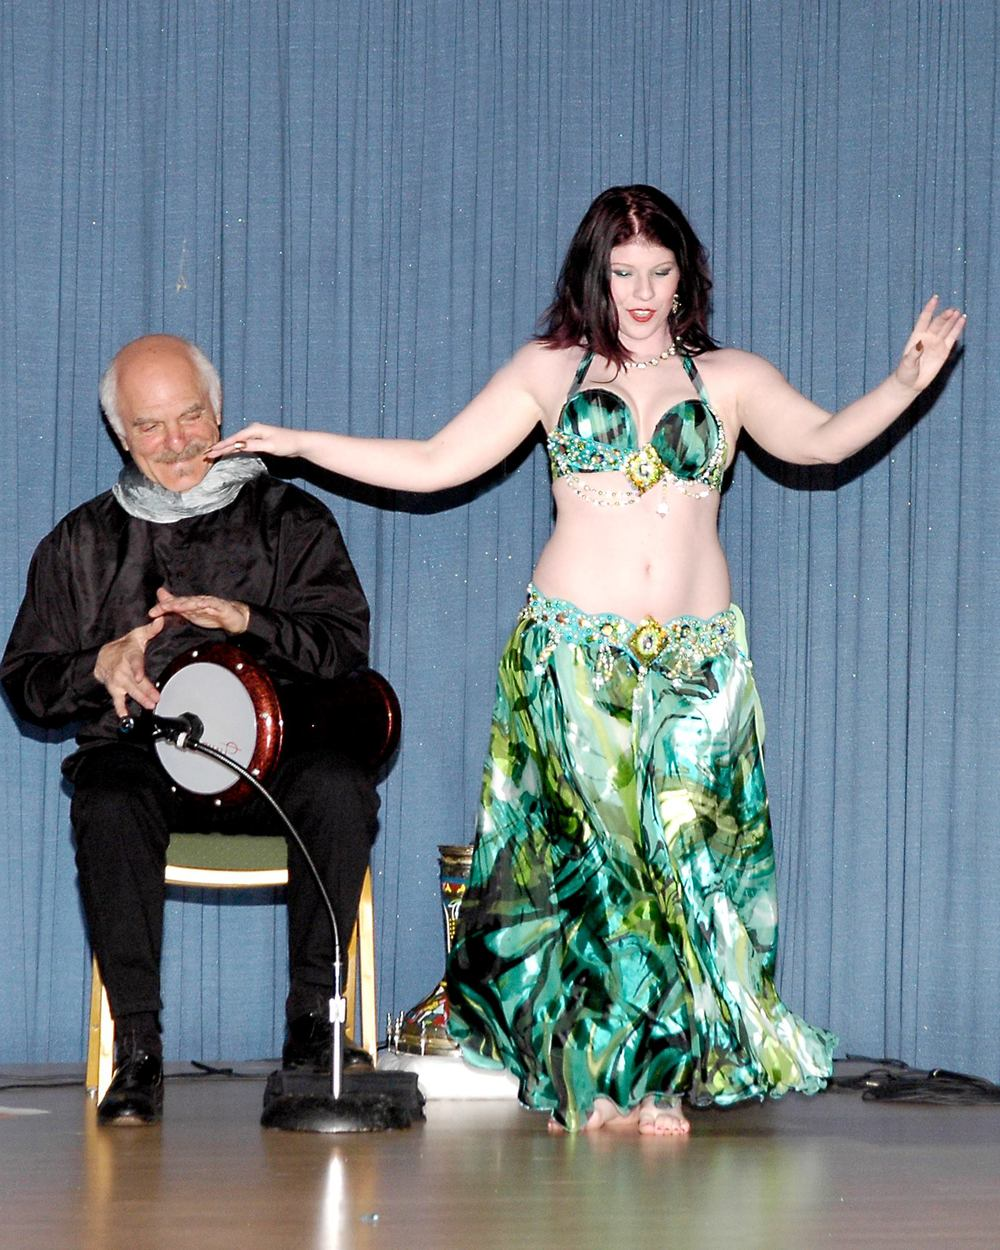 Amani Maharet bellydancing to live music @ Festival On The Nile in Orlando, FL.